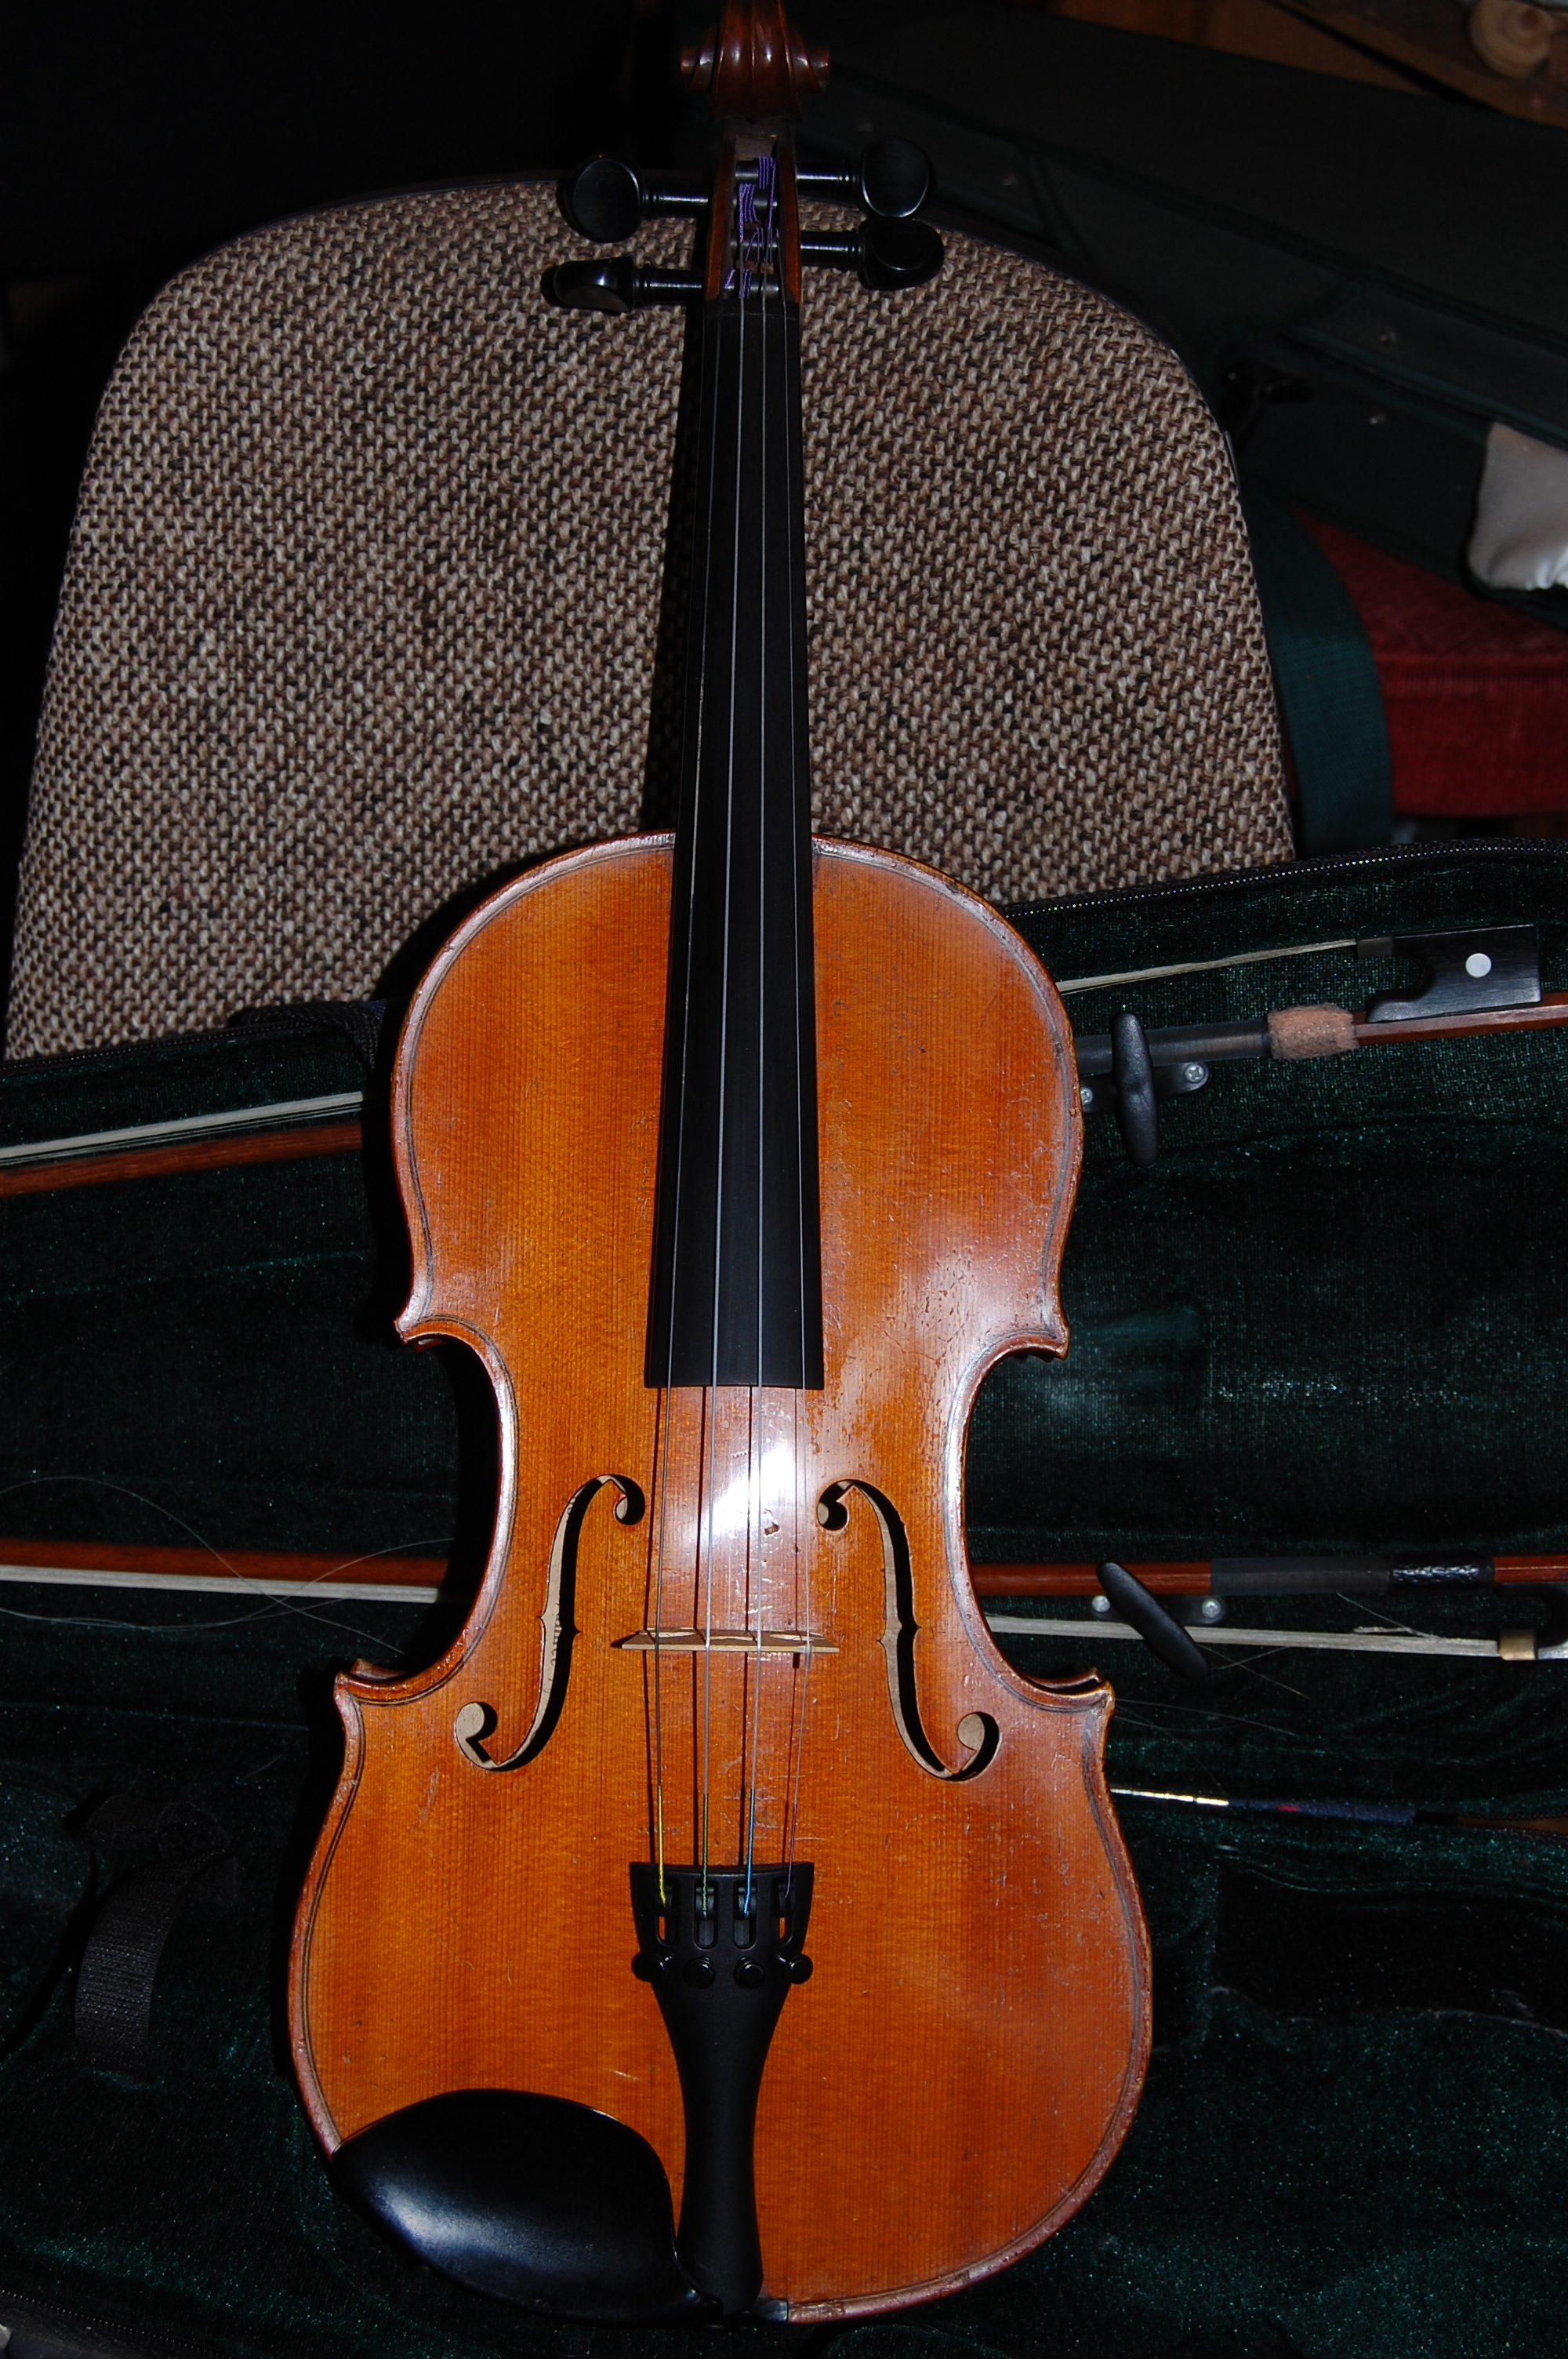 Full size French violin labelled 'J.B.Colin' C1900, two piece back with strong descending figure, well flamed ribs and medium grain. With shaped case and 2 bows £ 3,500 CS010  Condition: Excellent, fully restored  Tone: 5/5  Value for money: 5/5  Overall rating: 5/5